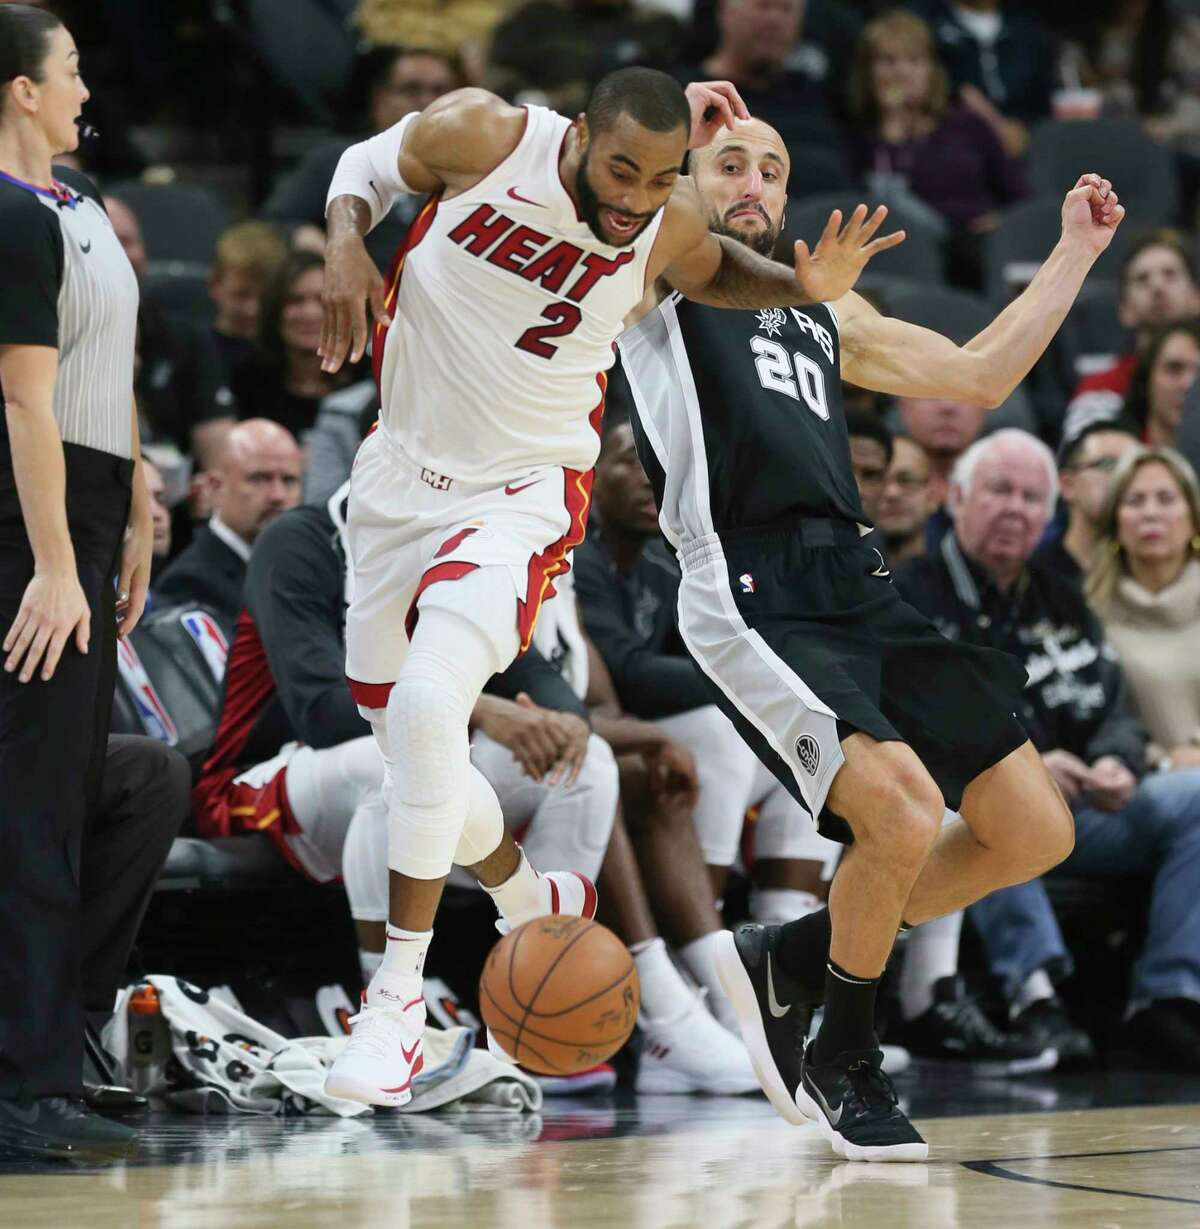 Spurs' Manu Ginobili (20) draws an offensive foul against Miami Heat's Wayne Ellington (02) at the AT&T Center on Wednesday, Dec. 6, 2017.